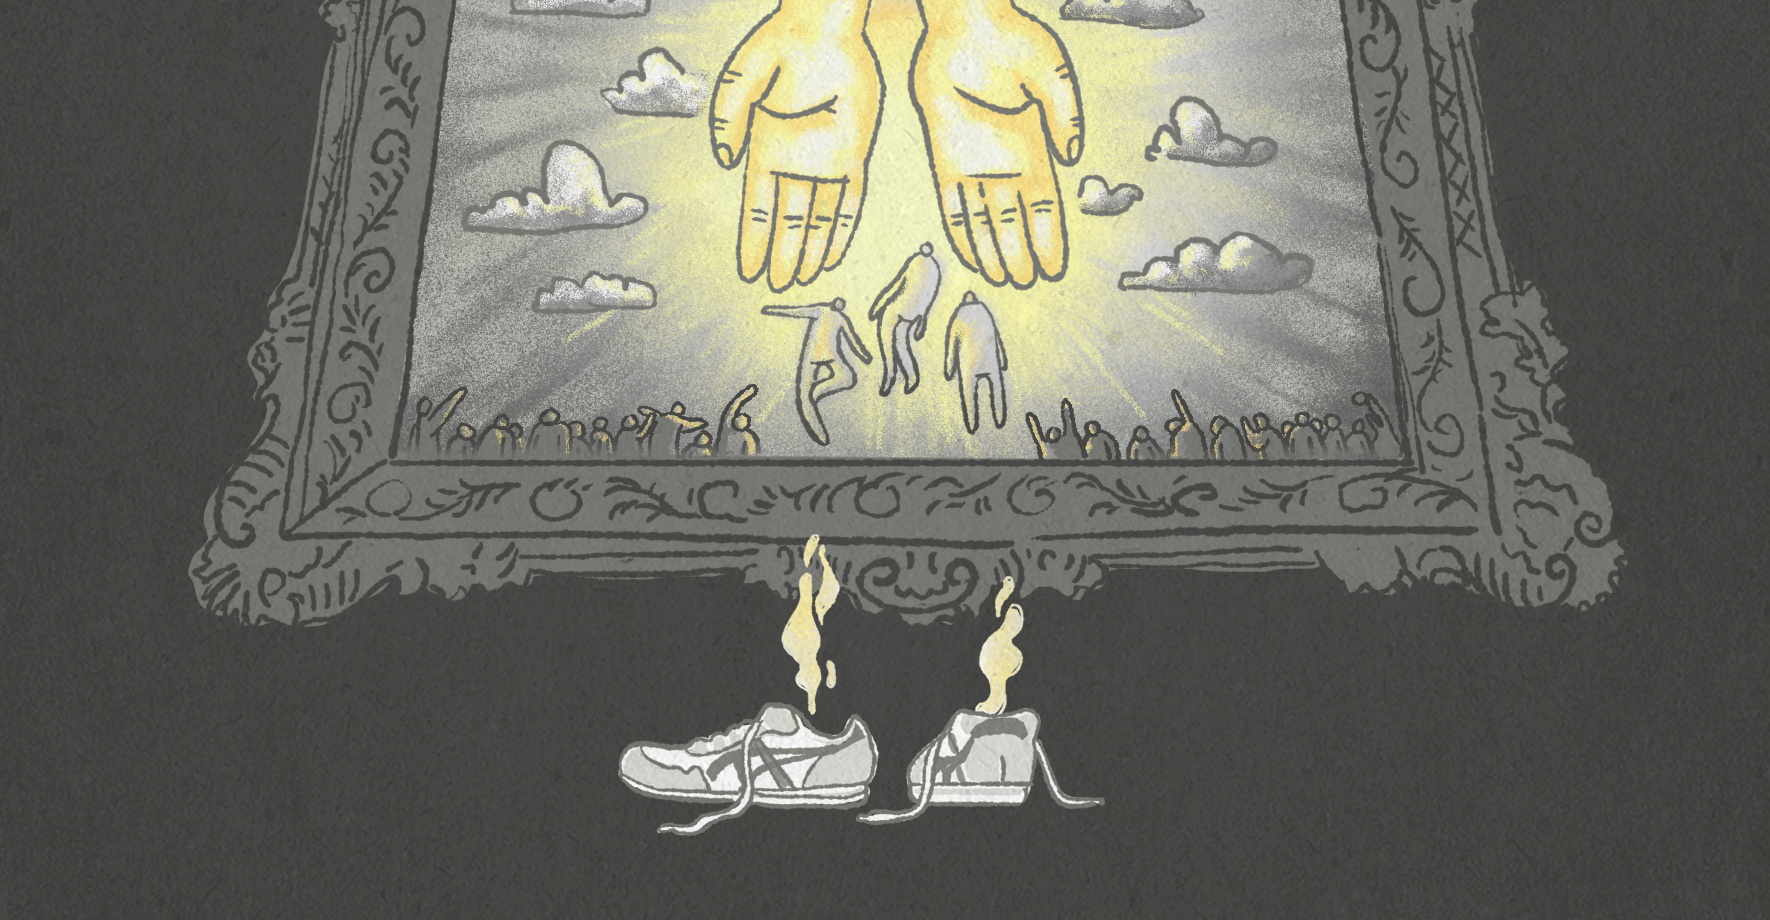 Shoes with smoke drifting upward are seen at the bottom of a picture frame, which depicts hands in the sky reach out to three people floating upward into clouds, while masses of people below observe.